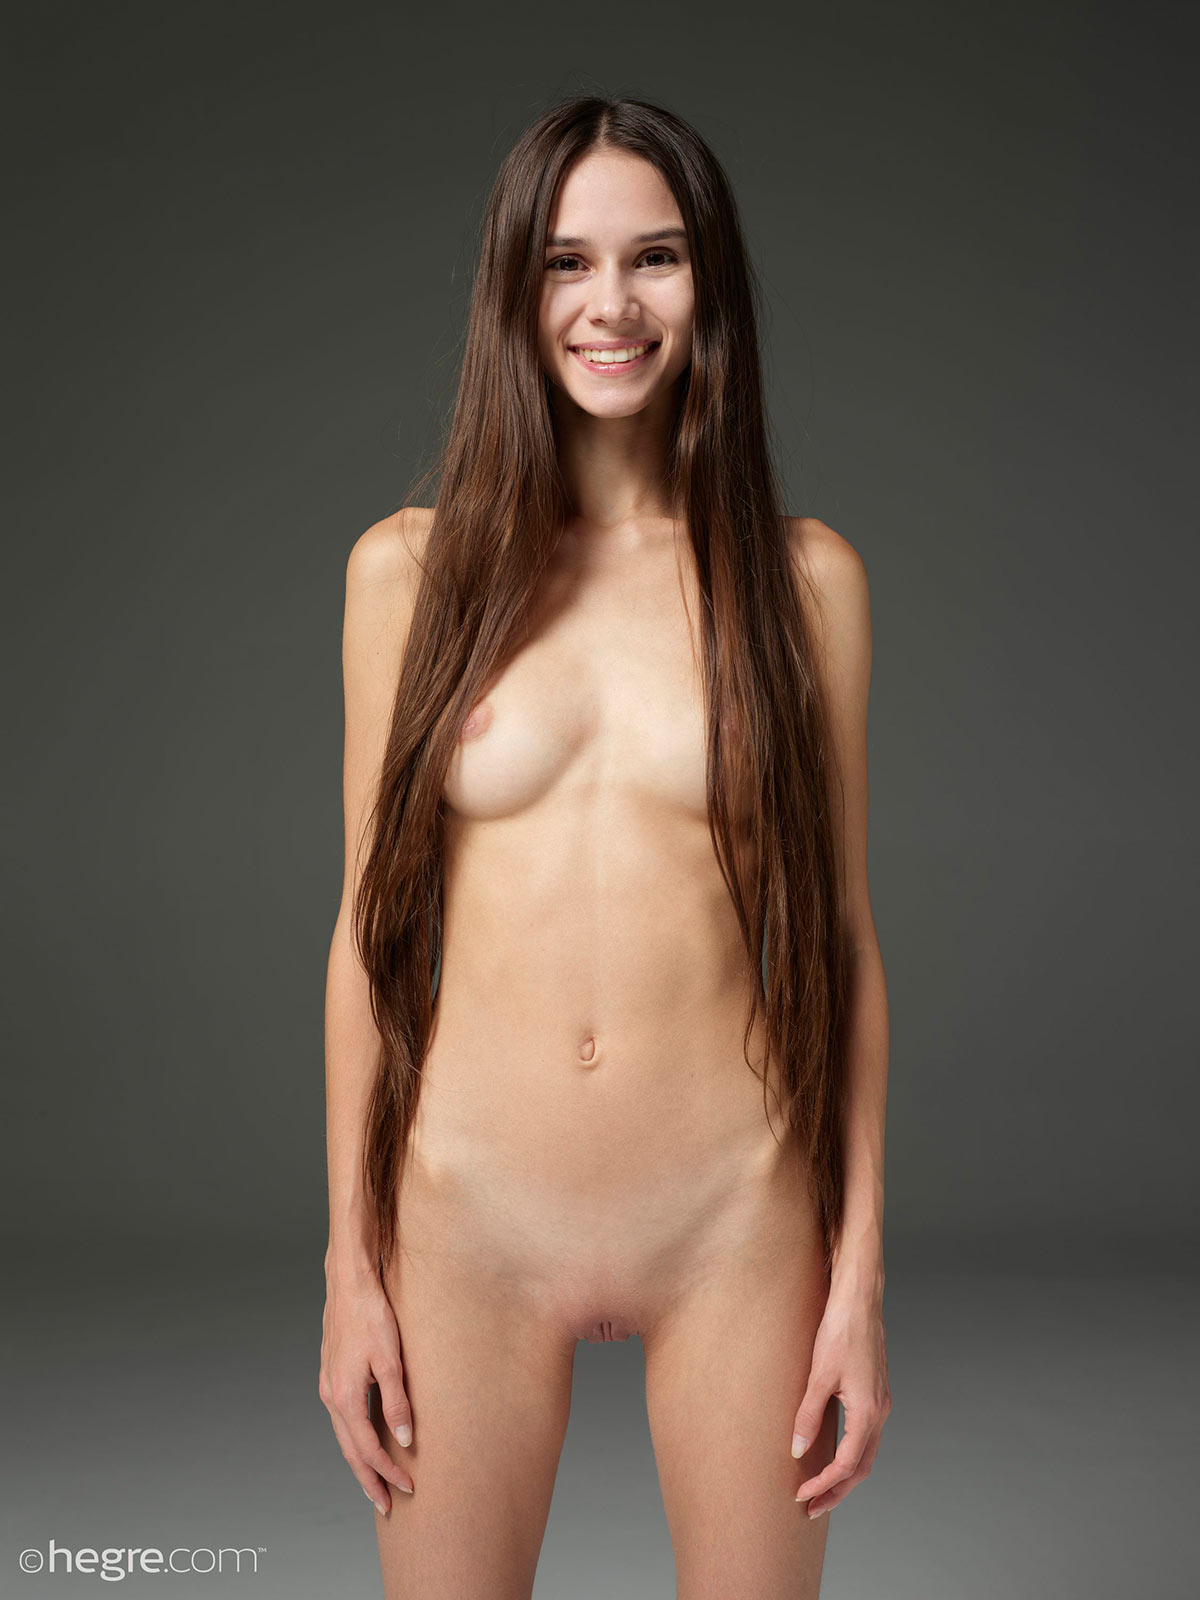 leona shot by petter hegre enjoy her first nude